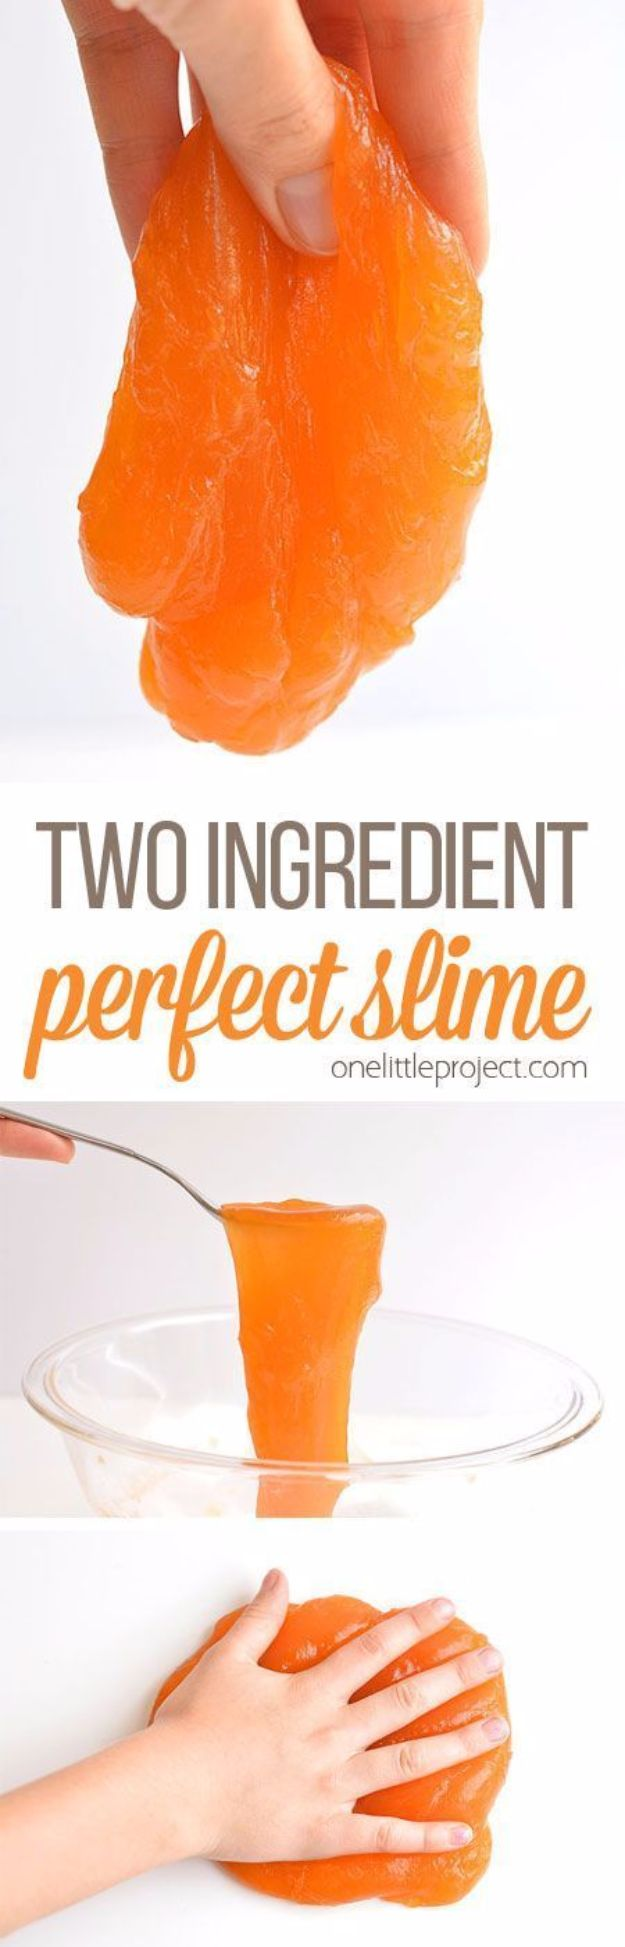 Best DIY Slime Recipes - Two Ingredient Perfect Slime - Cool and Easy Slime Recipe and Tutorials - Ideas Without Glue, Without Borax, For Kids, With Liquid Starch, Cornstarch and Laundry Detergent - How to Make Slime at Home - Fun Crafts and DIY Projects for Teens, Kids, Teenagers and Teens - Galaxy and Glitter Slime, Edible Slime, Rainbow Colored Slime, Shaving Cream recipes and more fun crafts and slimes http://diyprojectsforteens.com/diy-slime-recipe-ideas